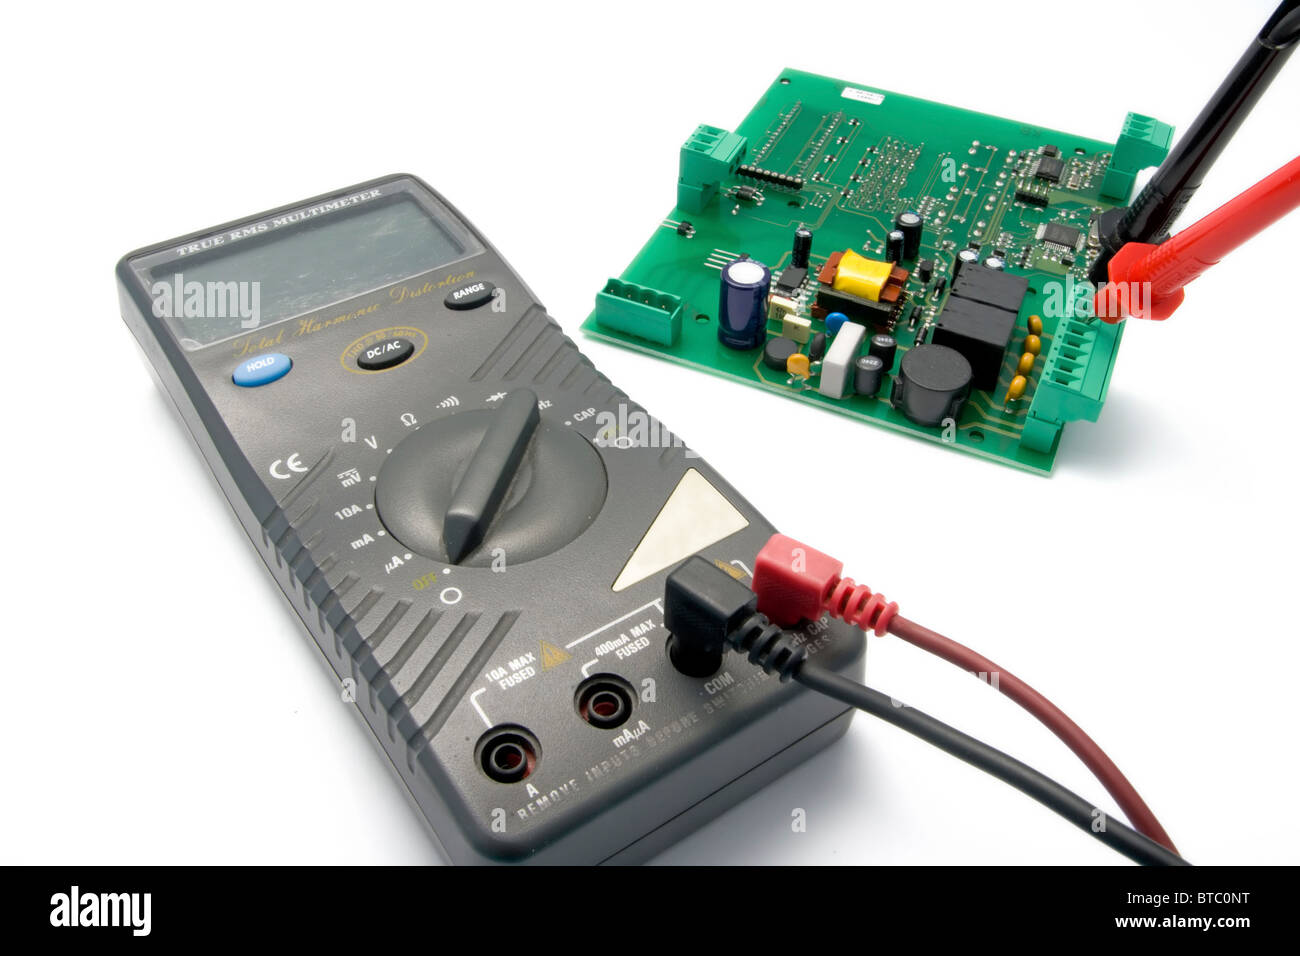 Multimeter Stock Photos Images Alamy Test Car Fuse Box Isolated And Printed Circuit Board For Testing Image